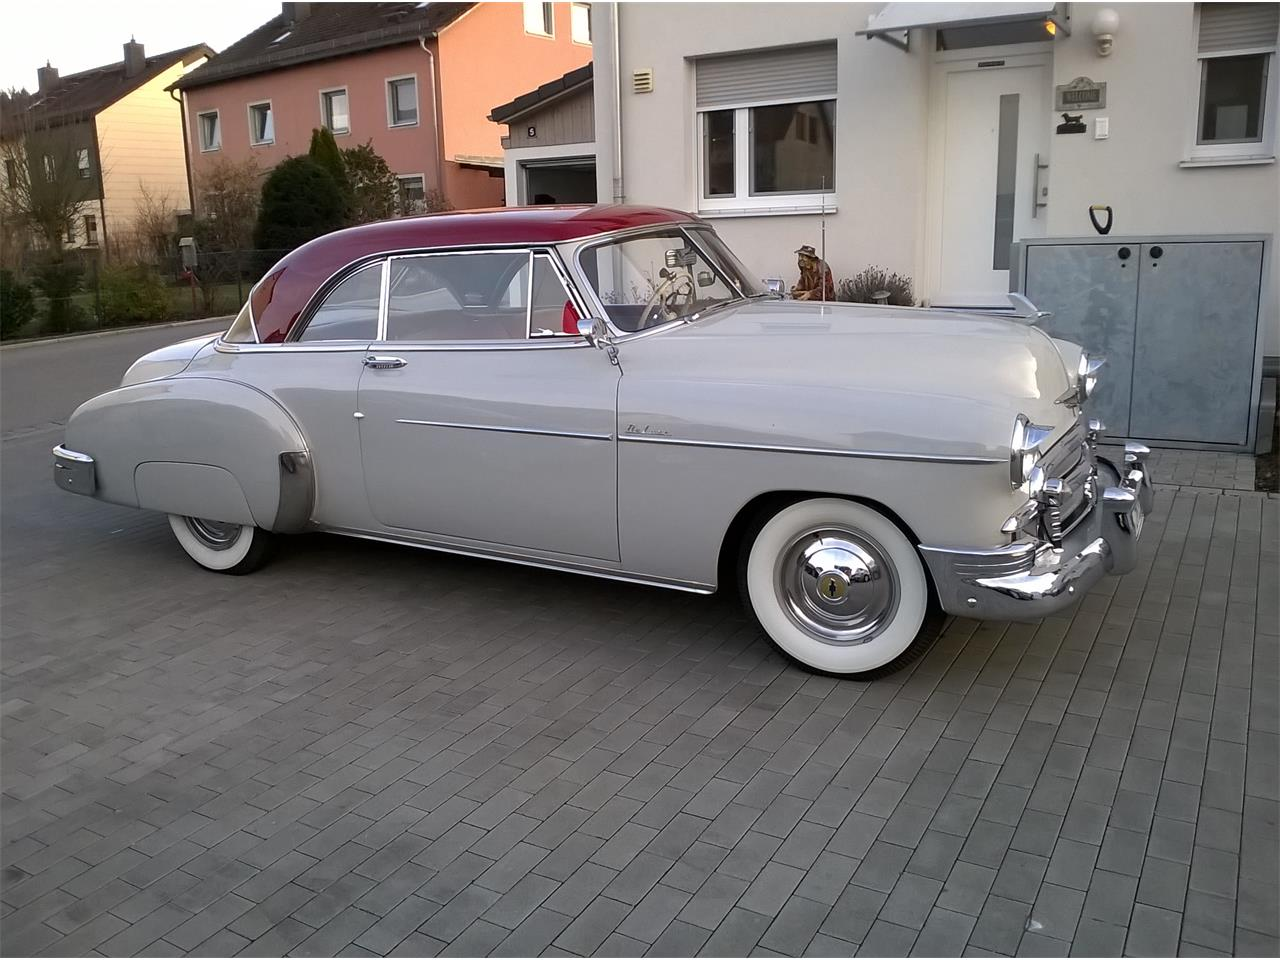 Large Picture of Classic 1950 Bel Air located in Tacoma Washington - $29,000.00 - G97W